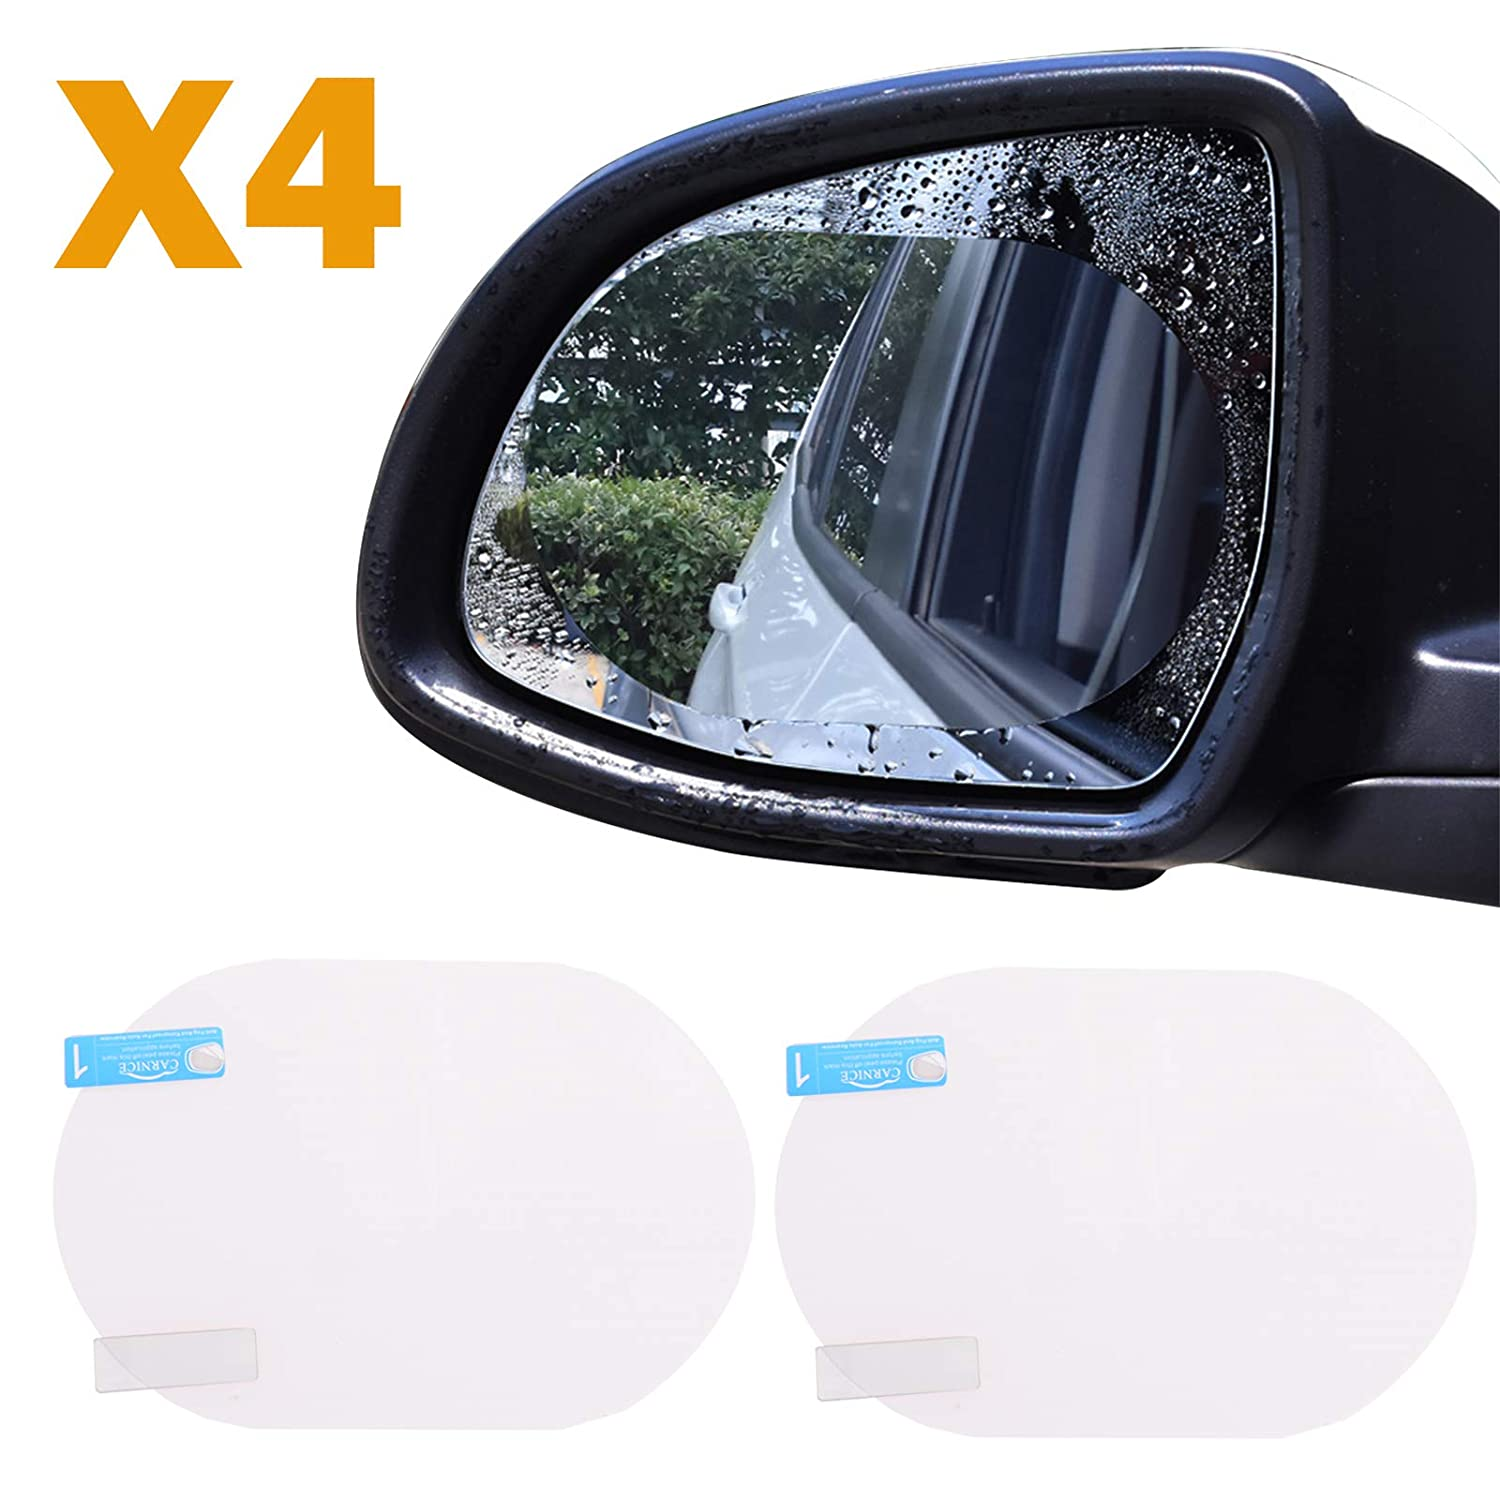 Voilamart 4PCs Car Rearview Mirror Rainproof Film, High Transmittance Clear Screen Waterproof Protective Sticker Film for Anti Fog Anti Mist- Soft Oval